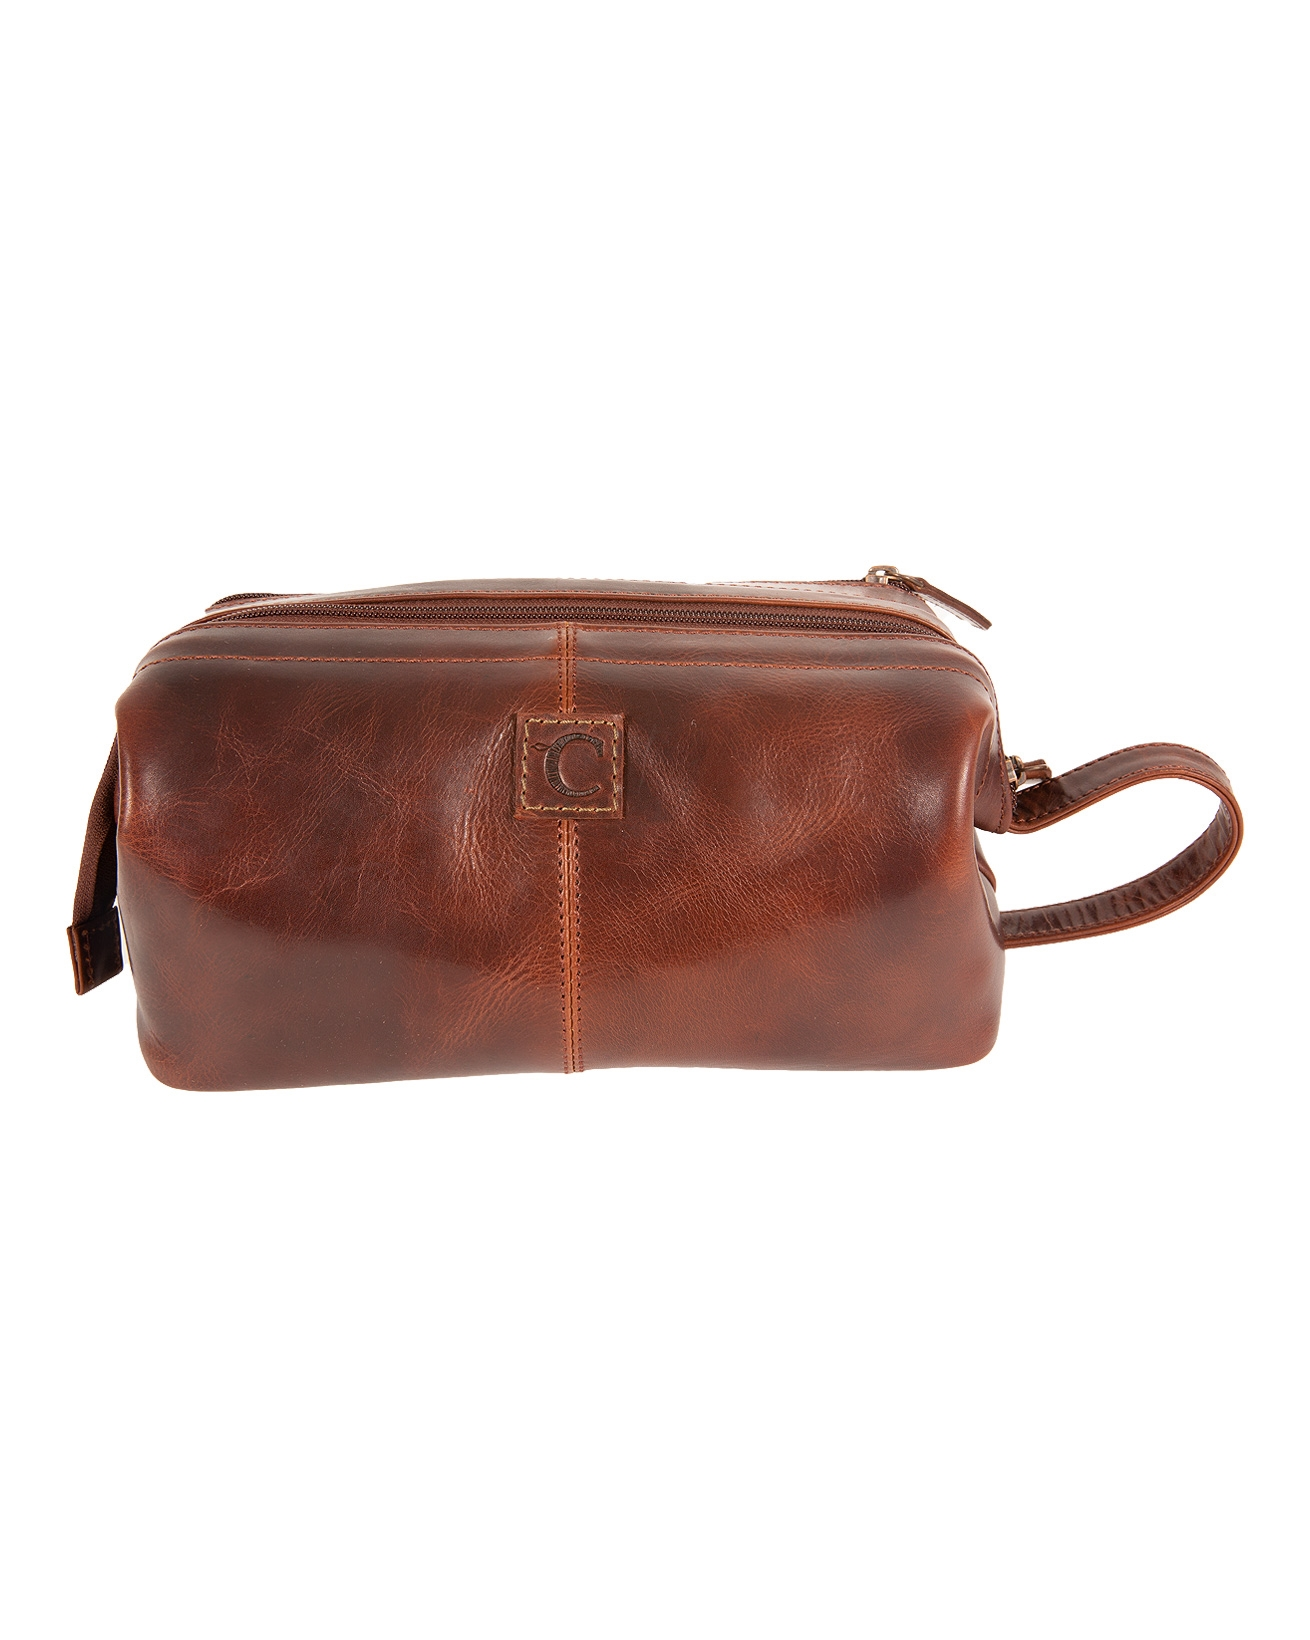 7540-burnished wash bag-chestnut-front.jpg